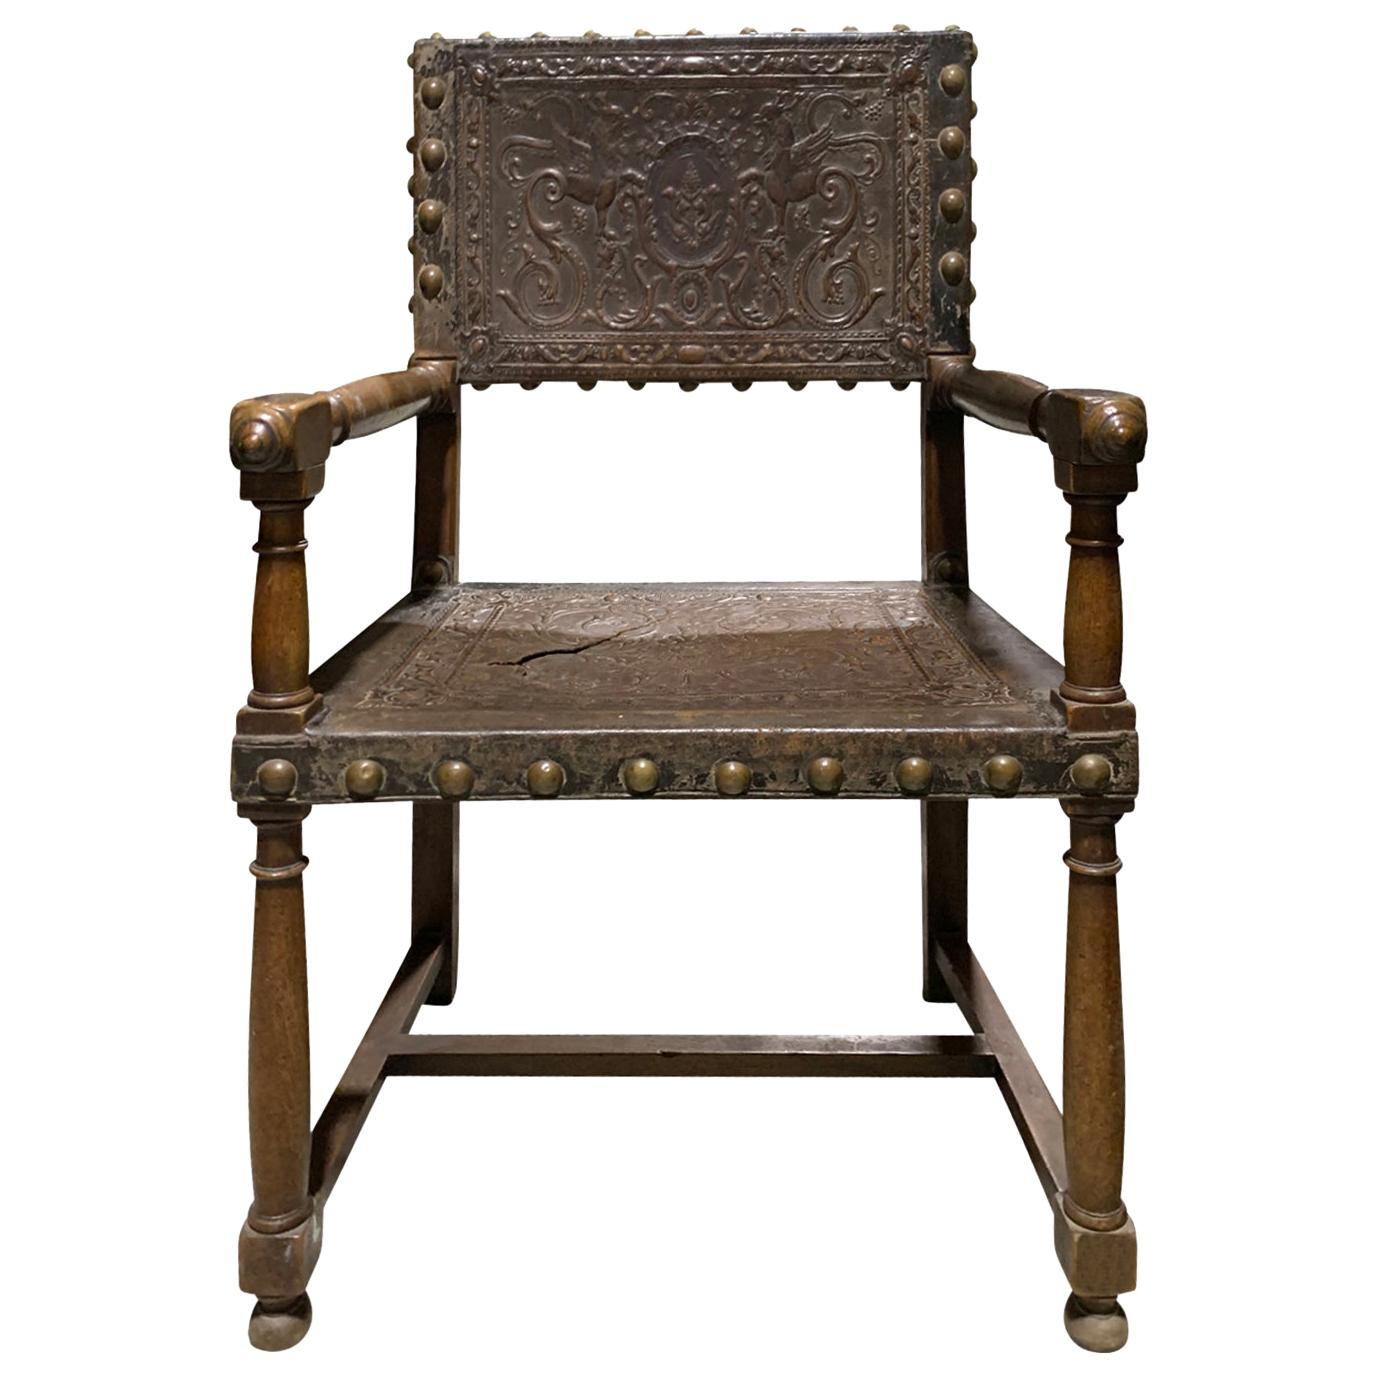 19th-20th Century Italian Armchair with Embossed Leather